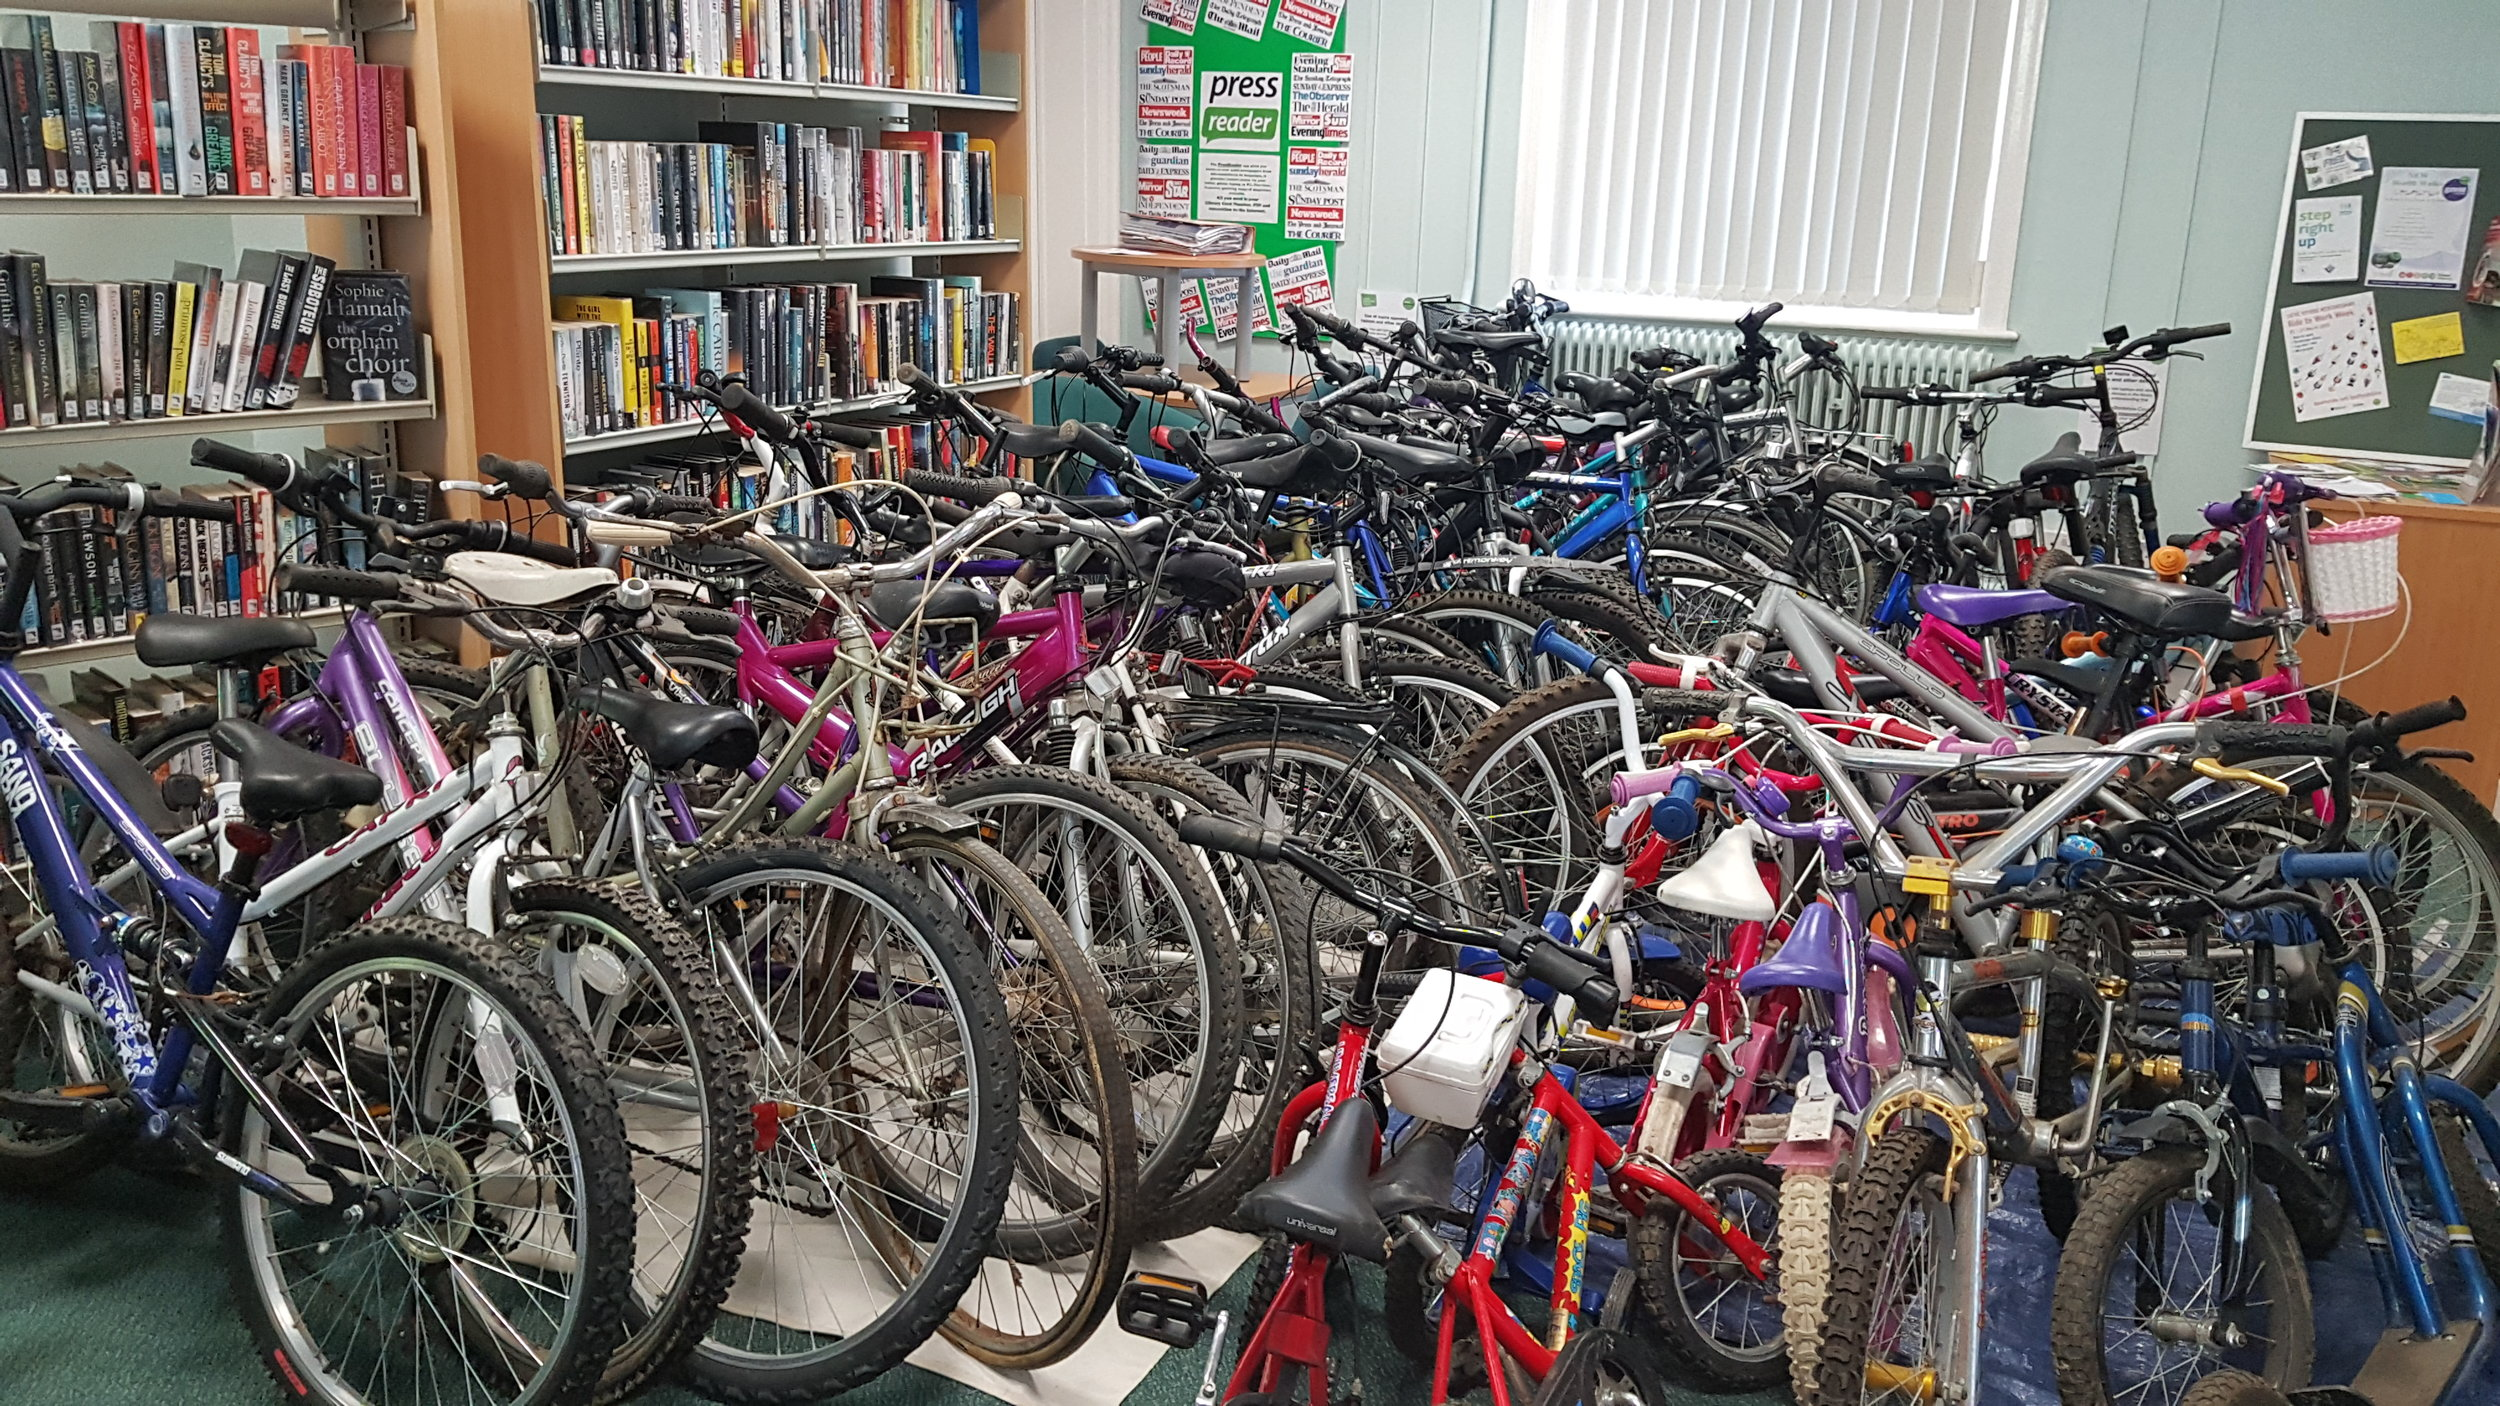 Recycled Bikes in Ampthill Library1.jpg